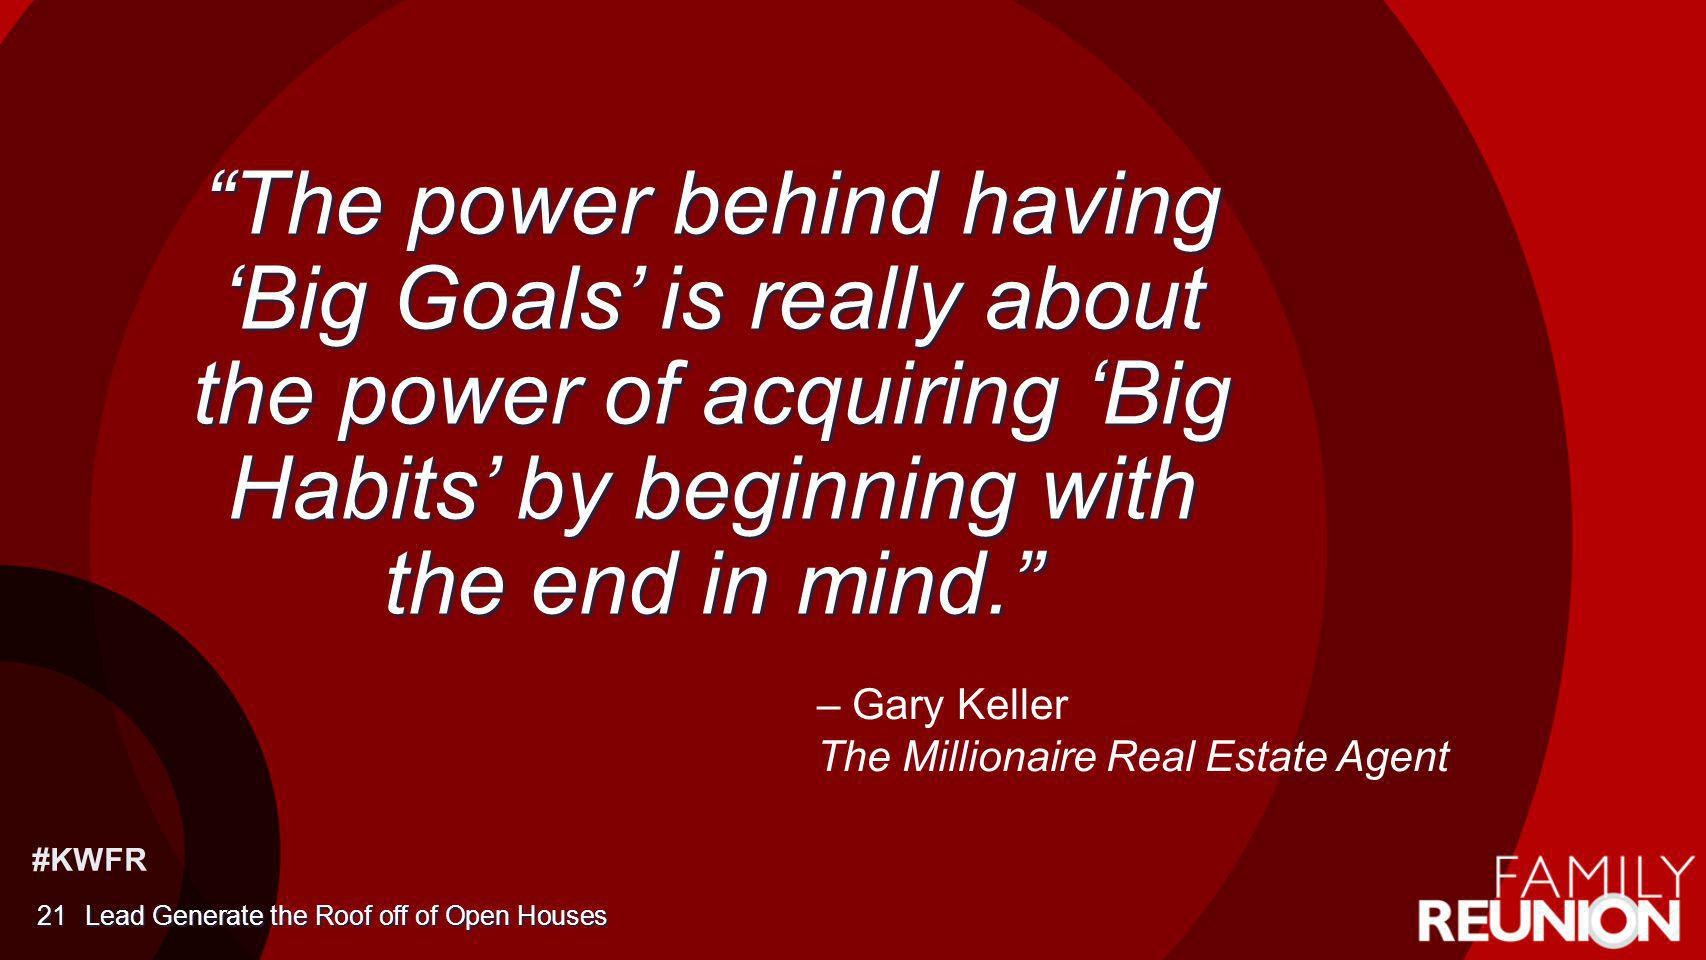 #KWFR The power behind having Big Goals is really about the power of acquiring Big Habits by beginning with the end in mind. Lead Generate the Roof of